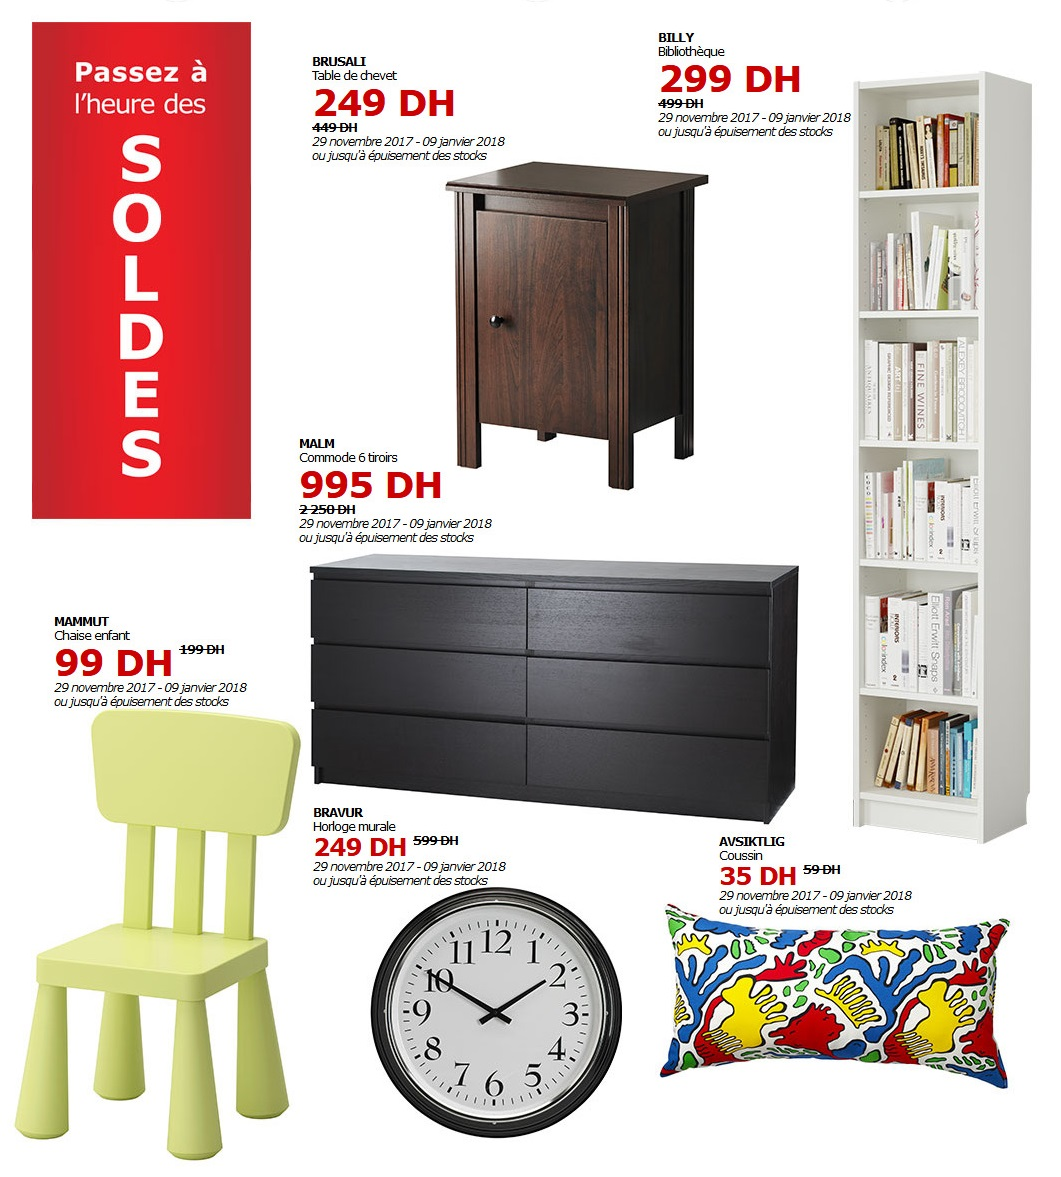 ikea brest soldes ikea soldes paris sud thiais with ikea metz soldes simple cuisine inea. Black Bedroom Furniture Sets. Home Design Ideas